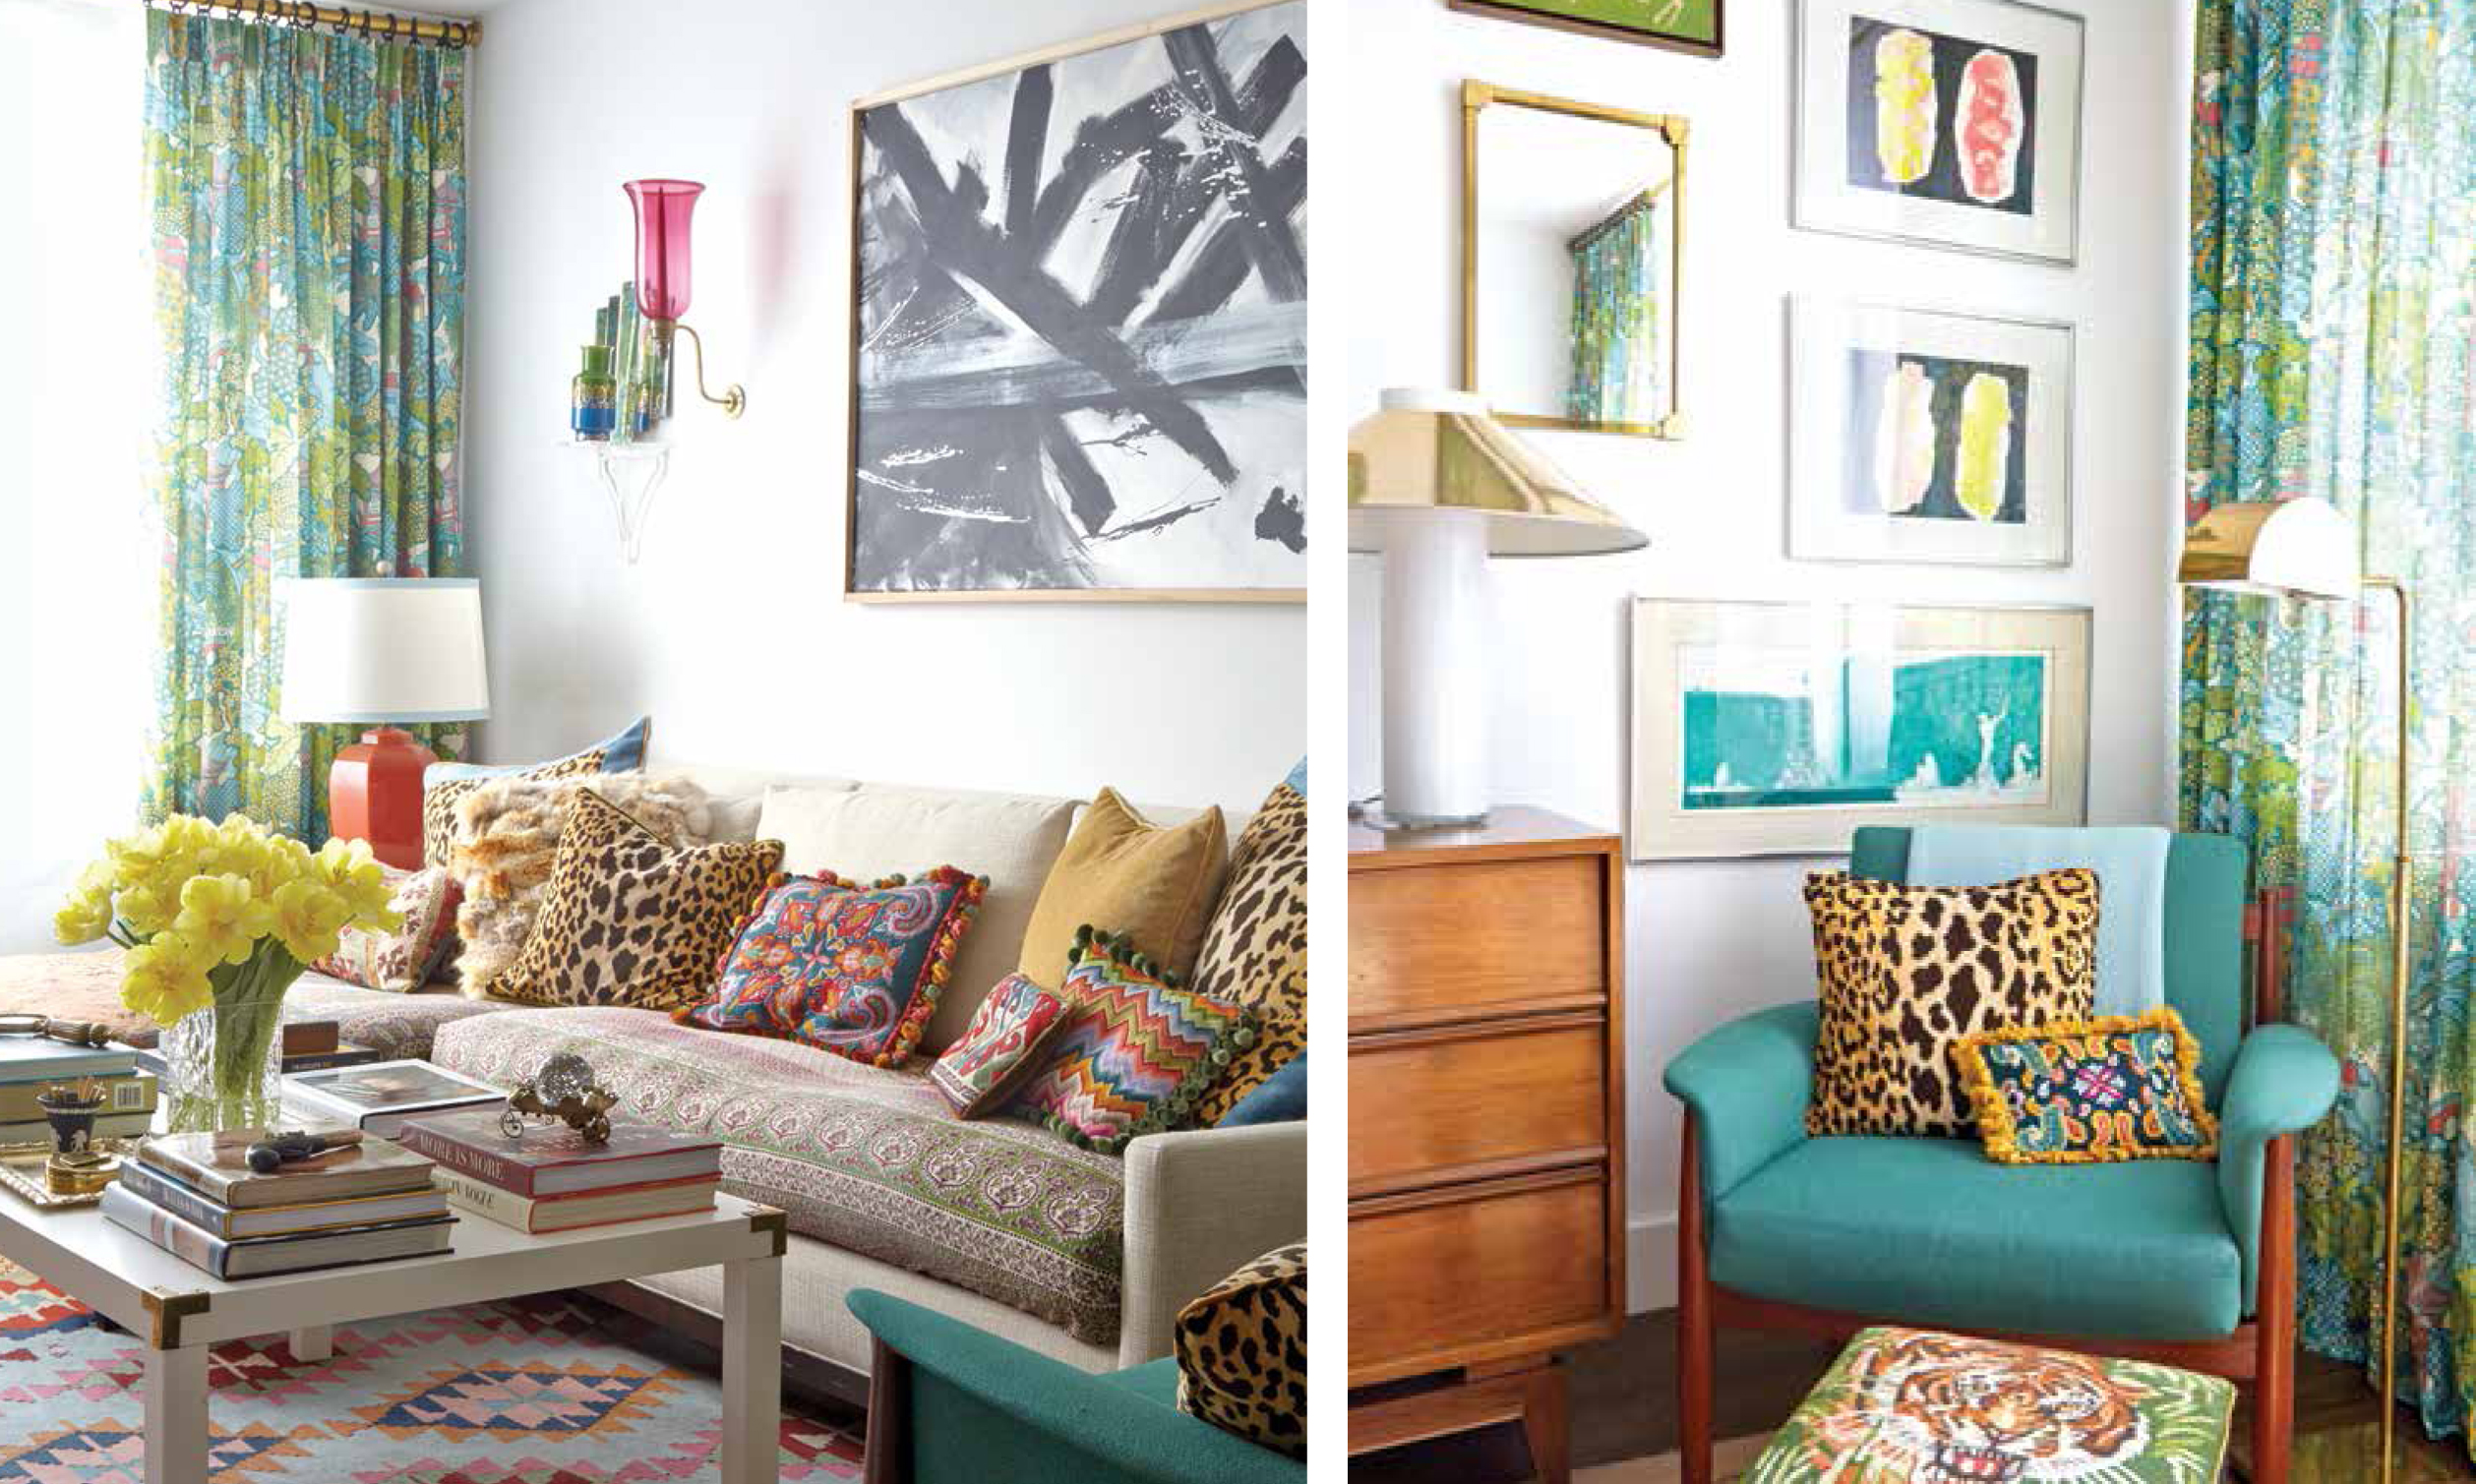 10 Great Sources of Home Design Inspiration - Thumbtack Journal